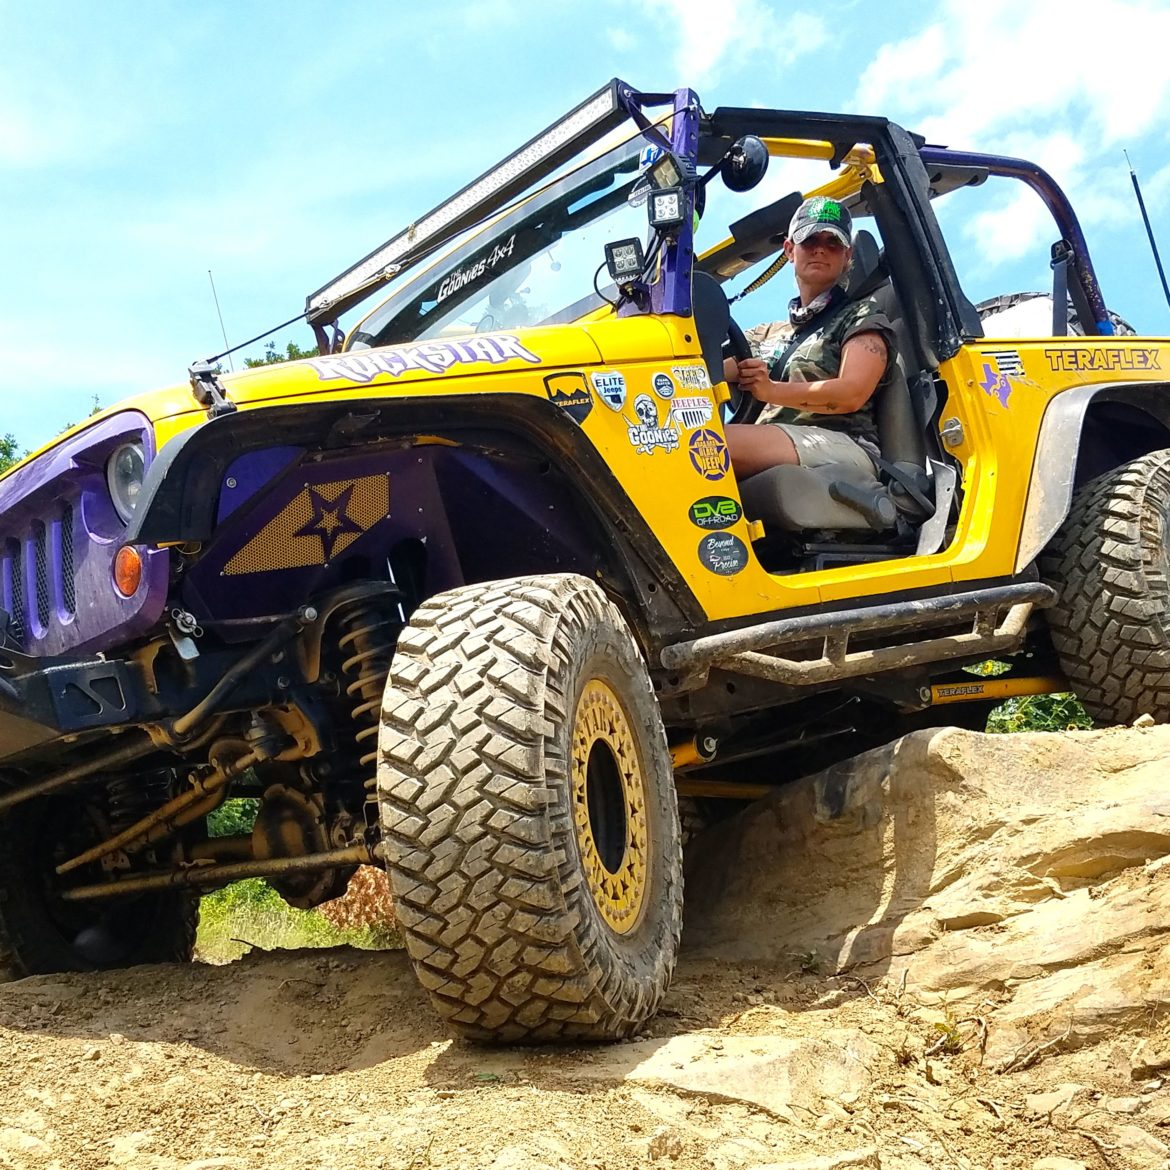 Jessy Greenland – Ladies Offroad Challenge Featured Entry